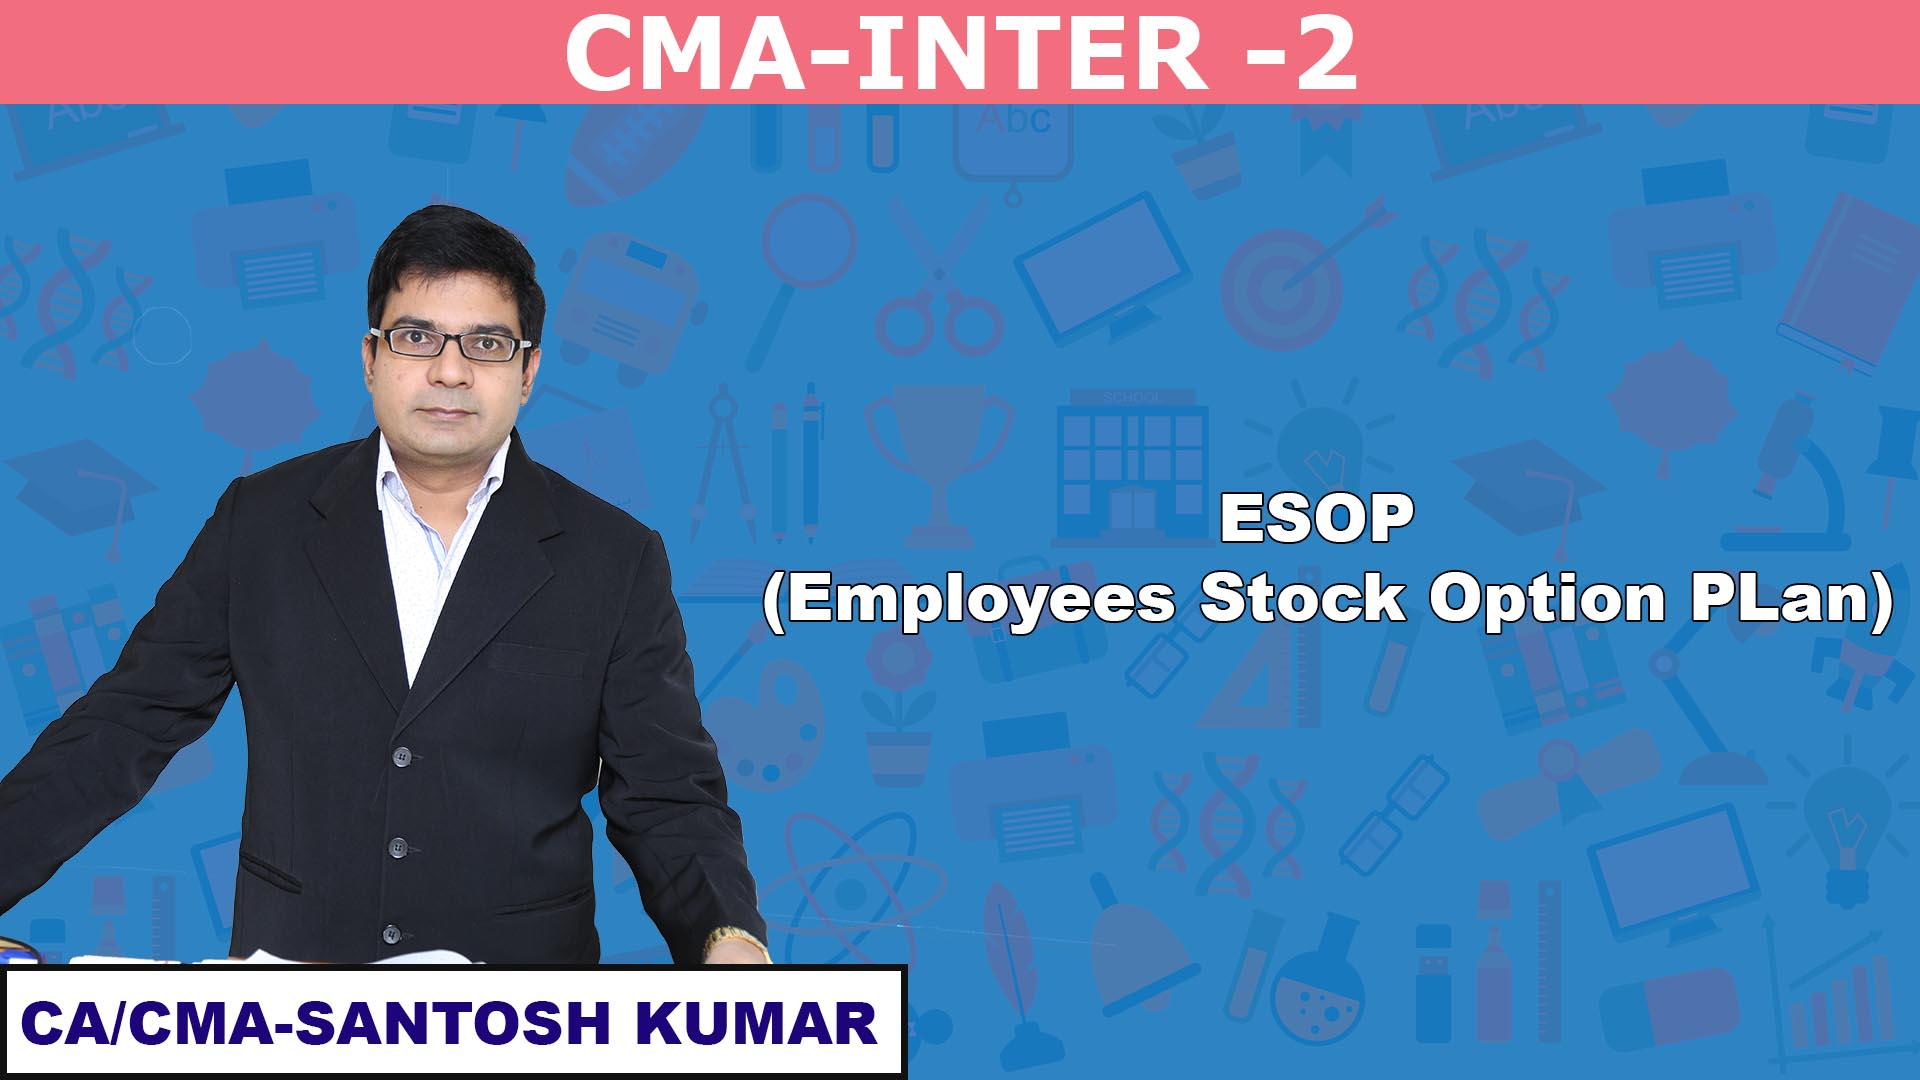 ESOP (Employees Stock Option PLan)